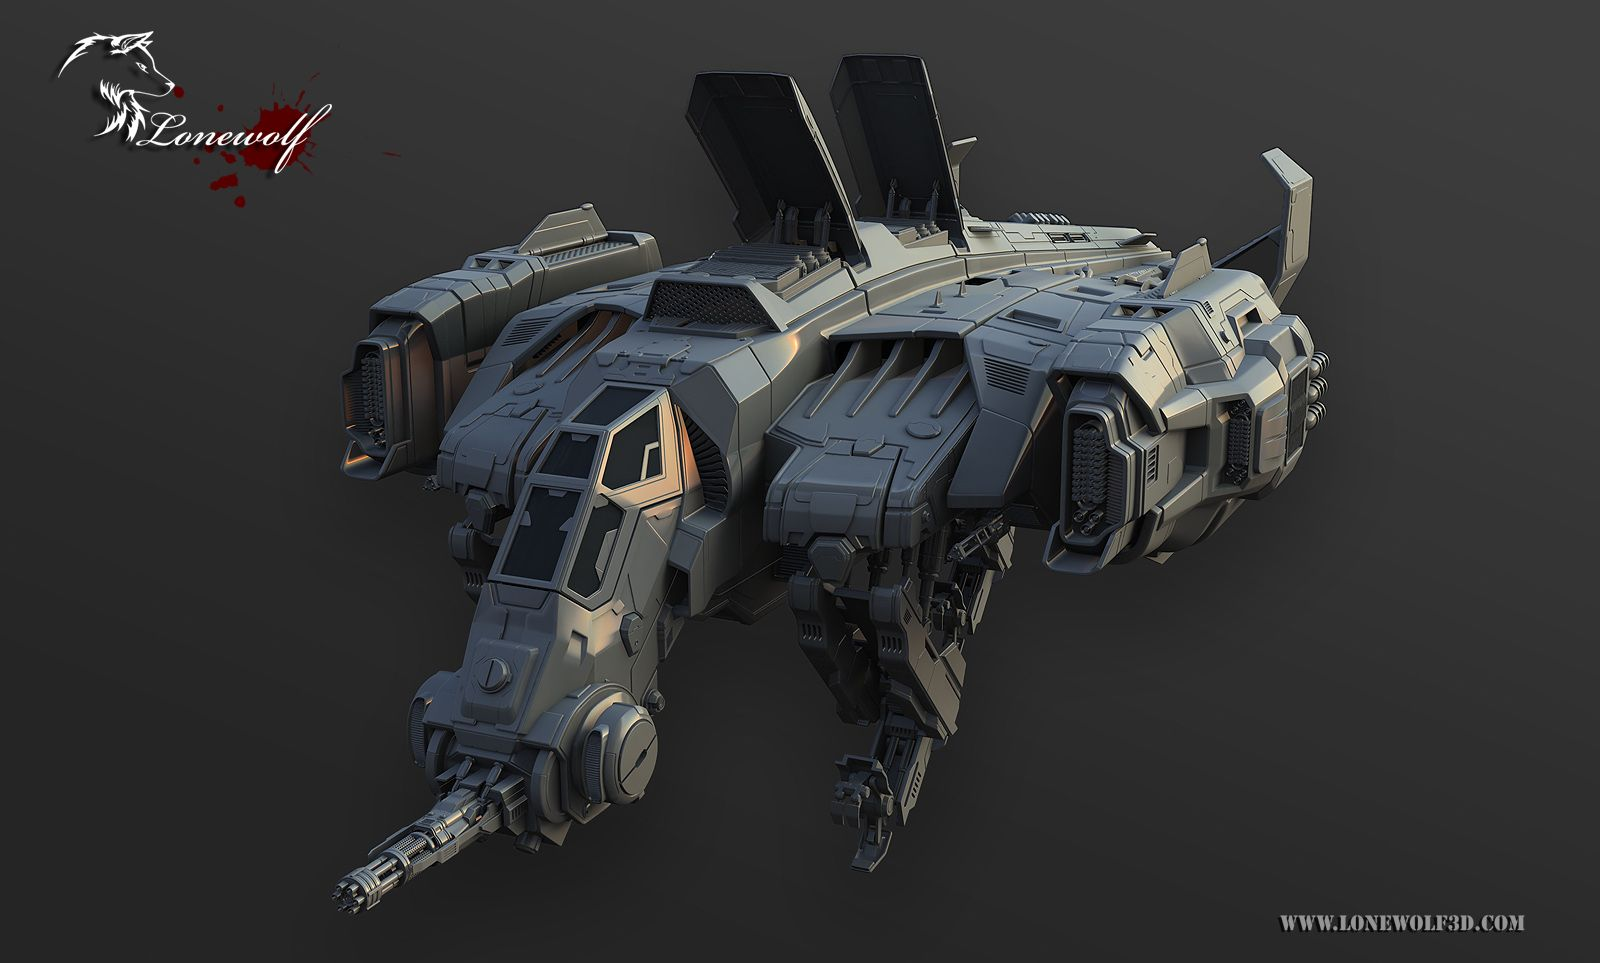 Section 8 (video game) ship | Concept ships, Futuristic ...